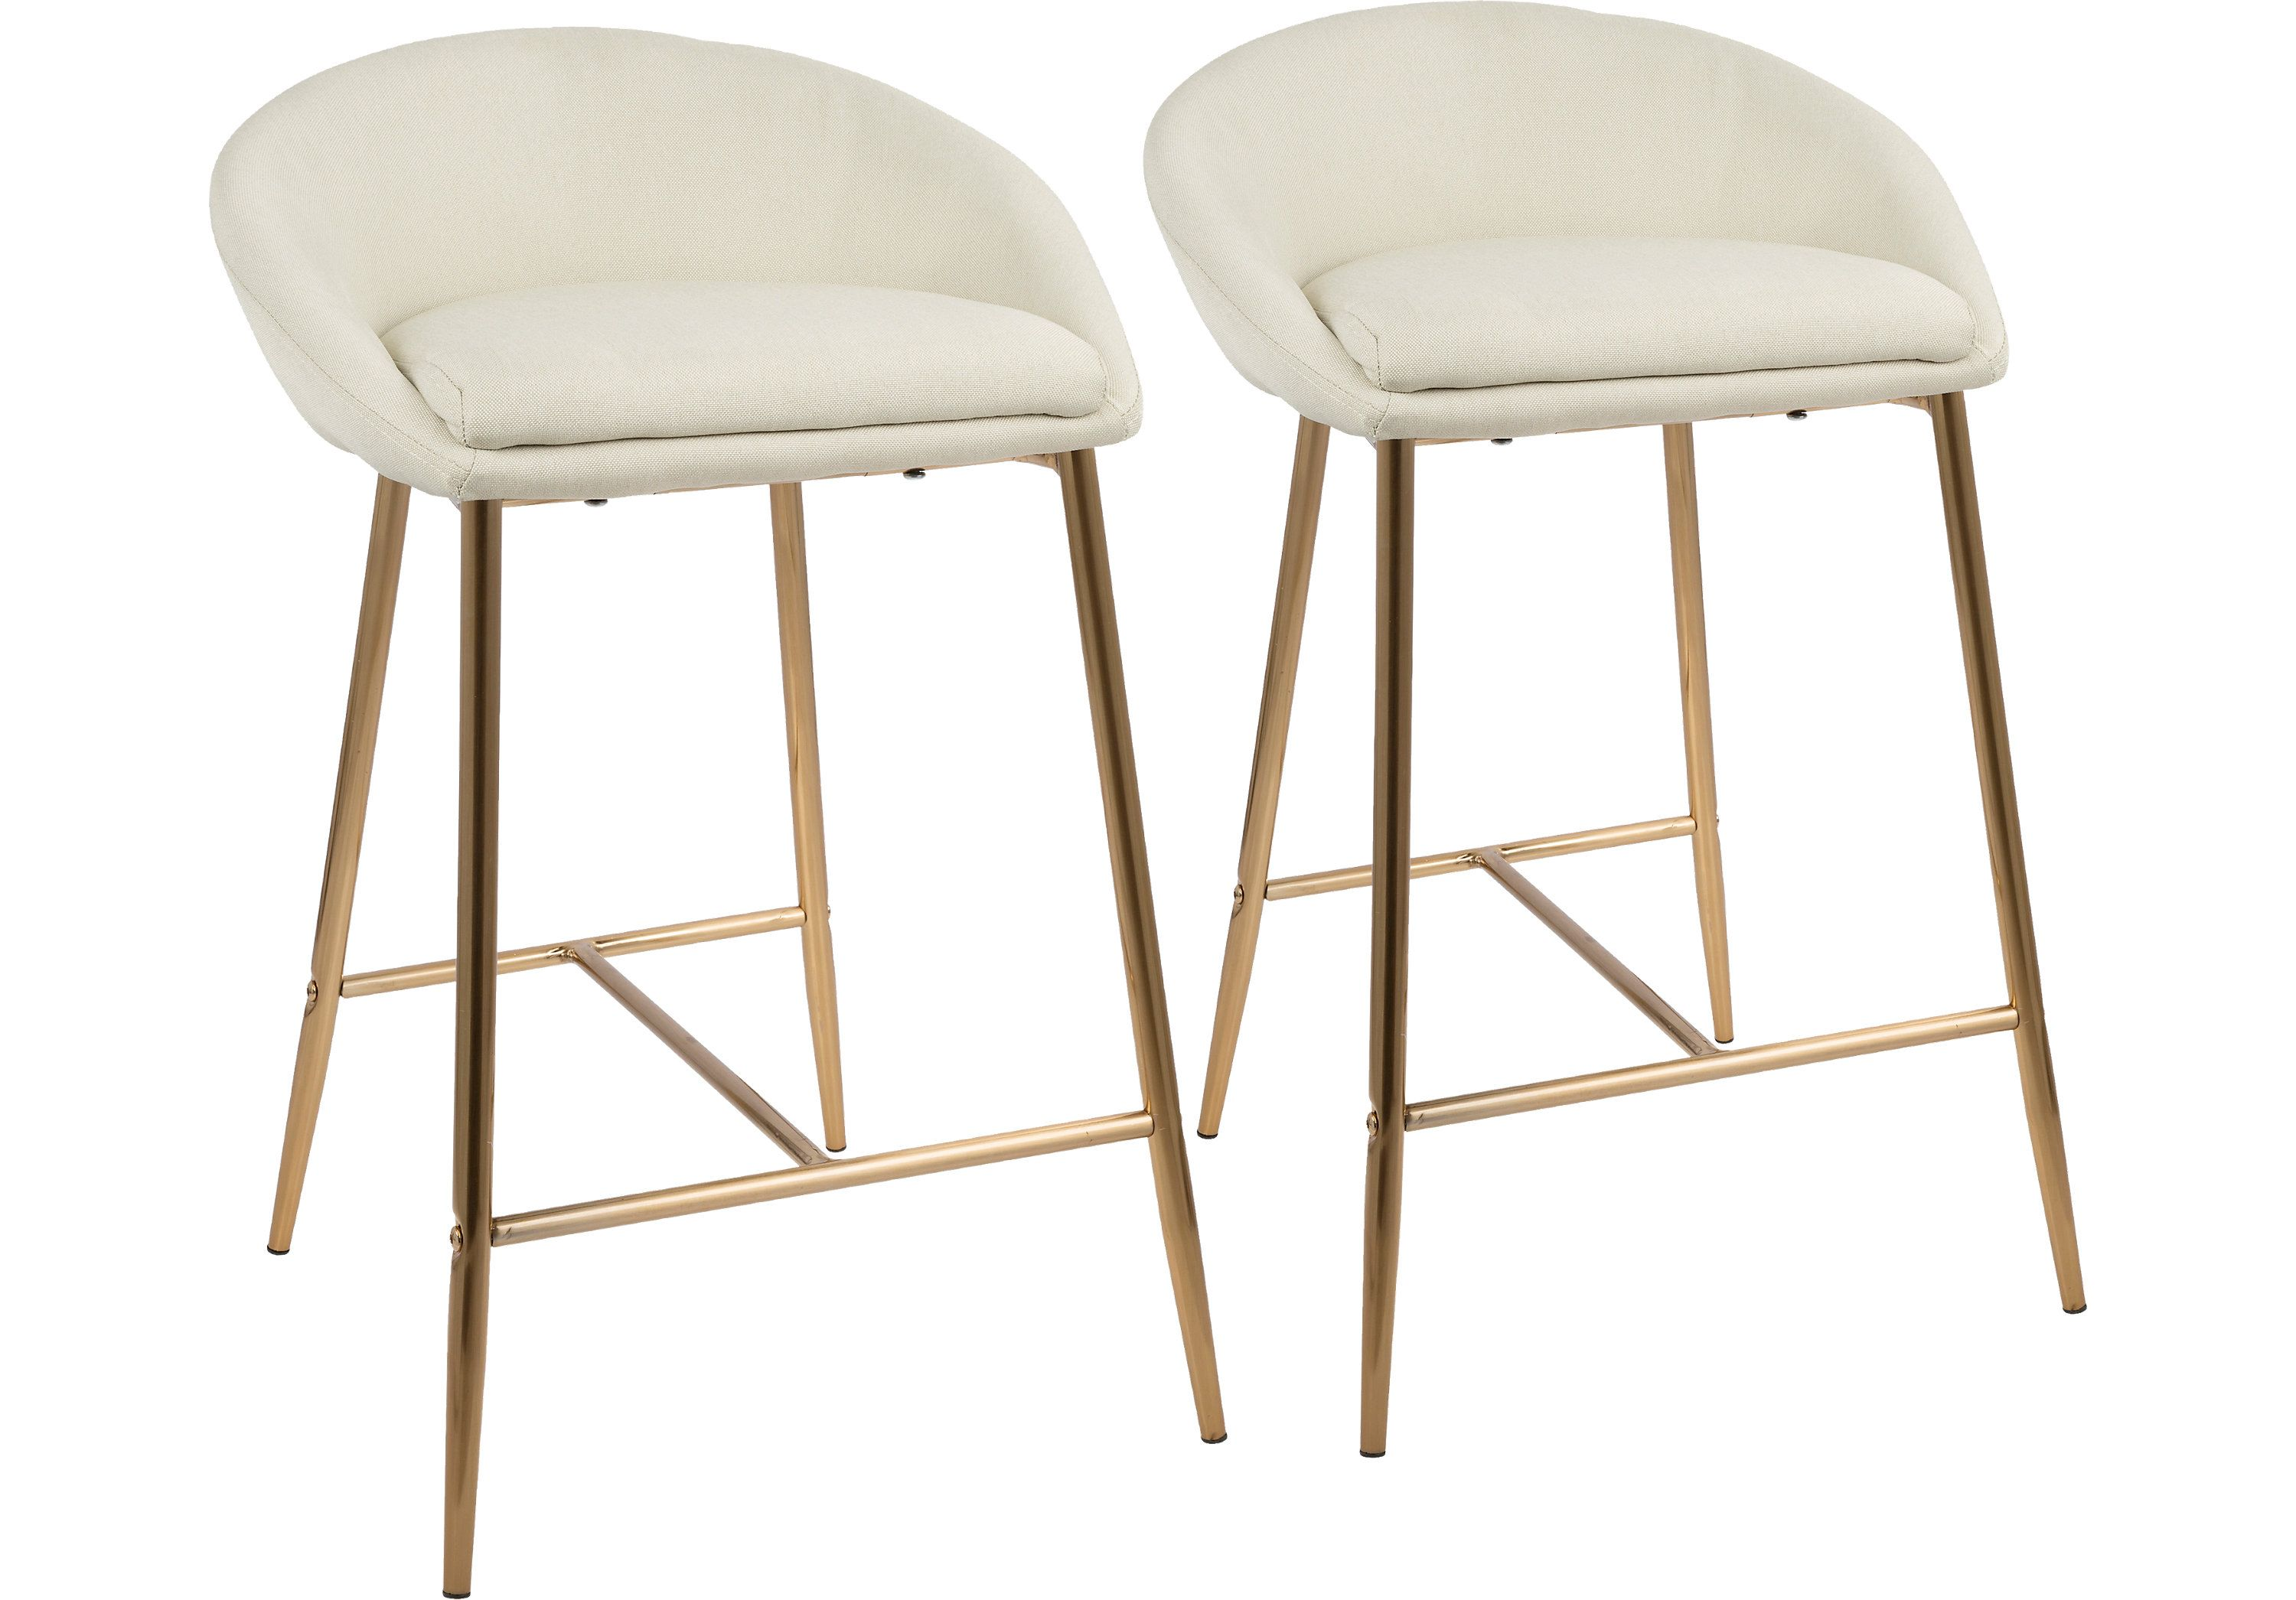 Bar Stool Height Orna Cream Counter Height Stool Set Of 2 In 2019 New Life